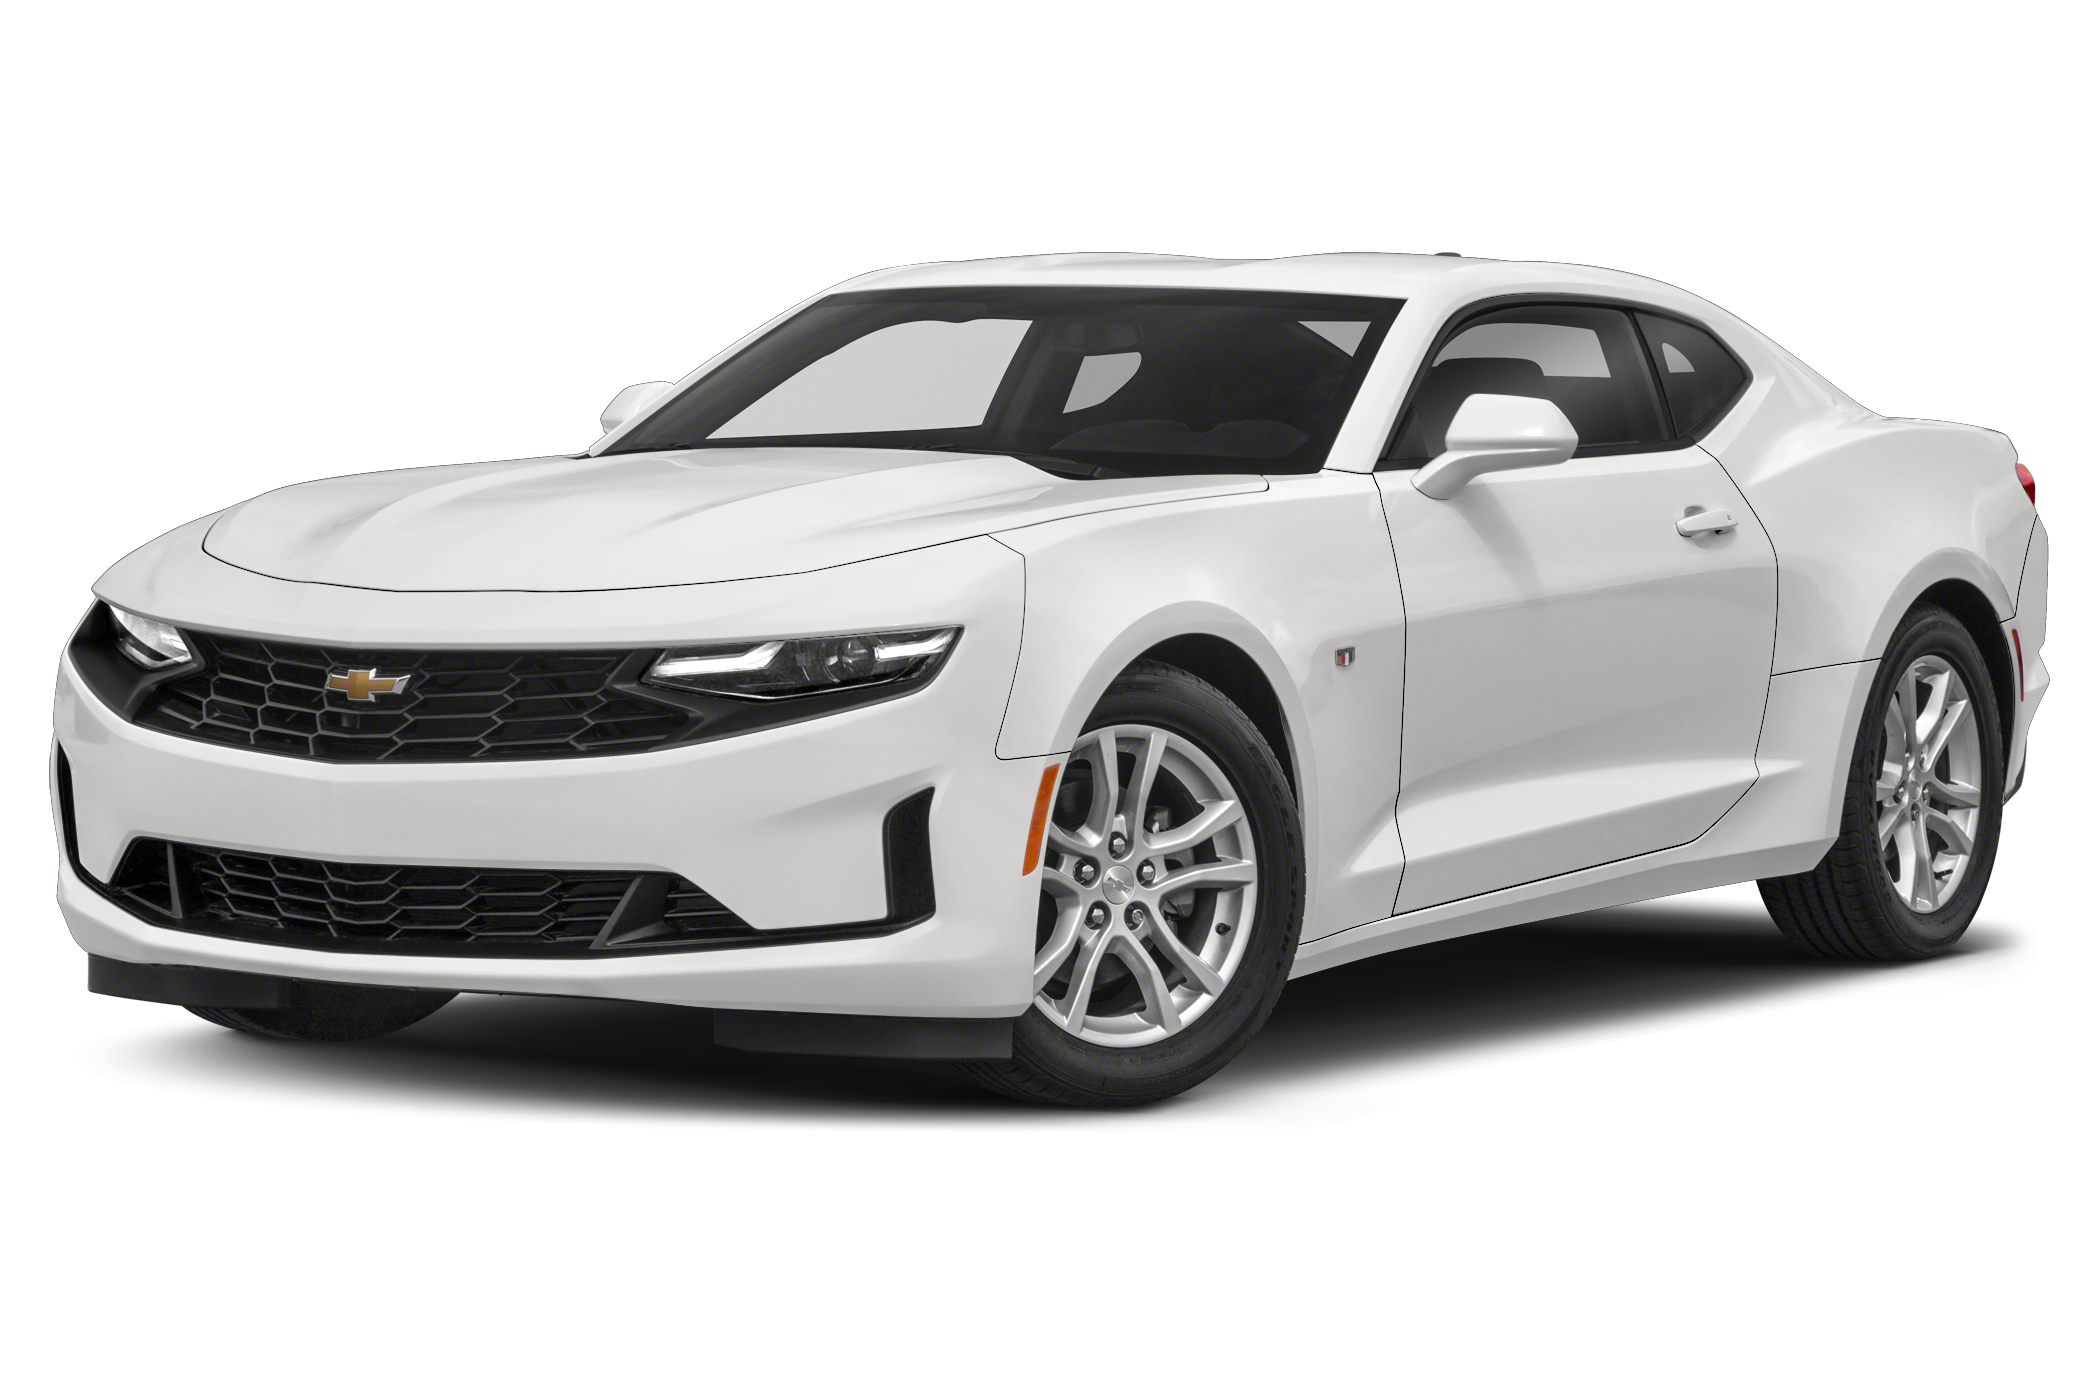 2020 Chevrolet Camaro Lt1 2dr Coupe Specs And Prices